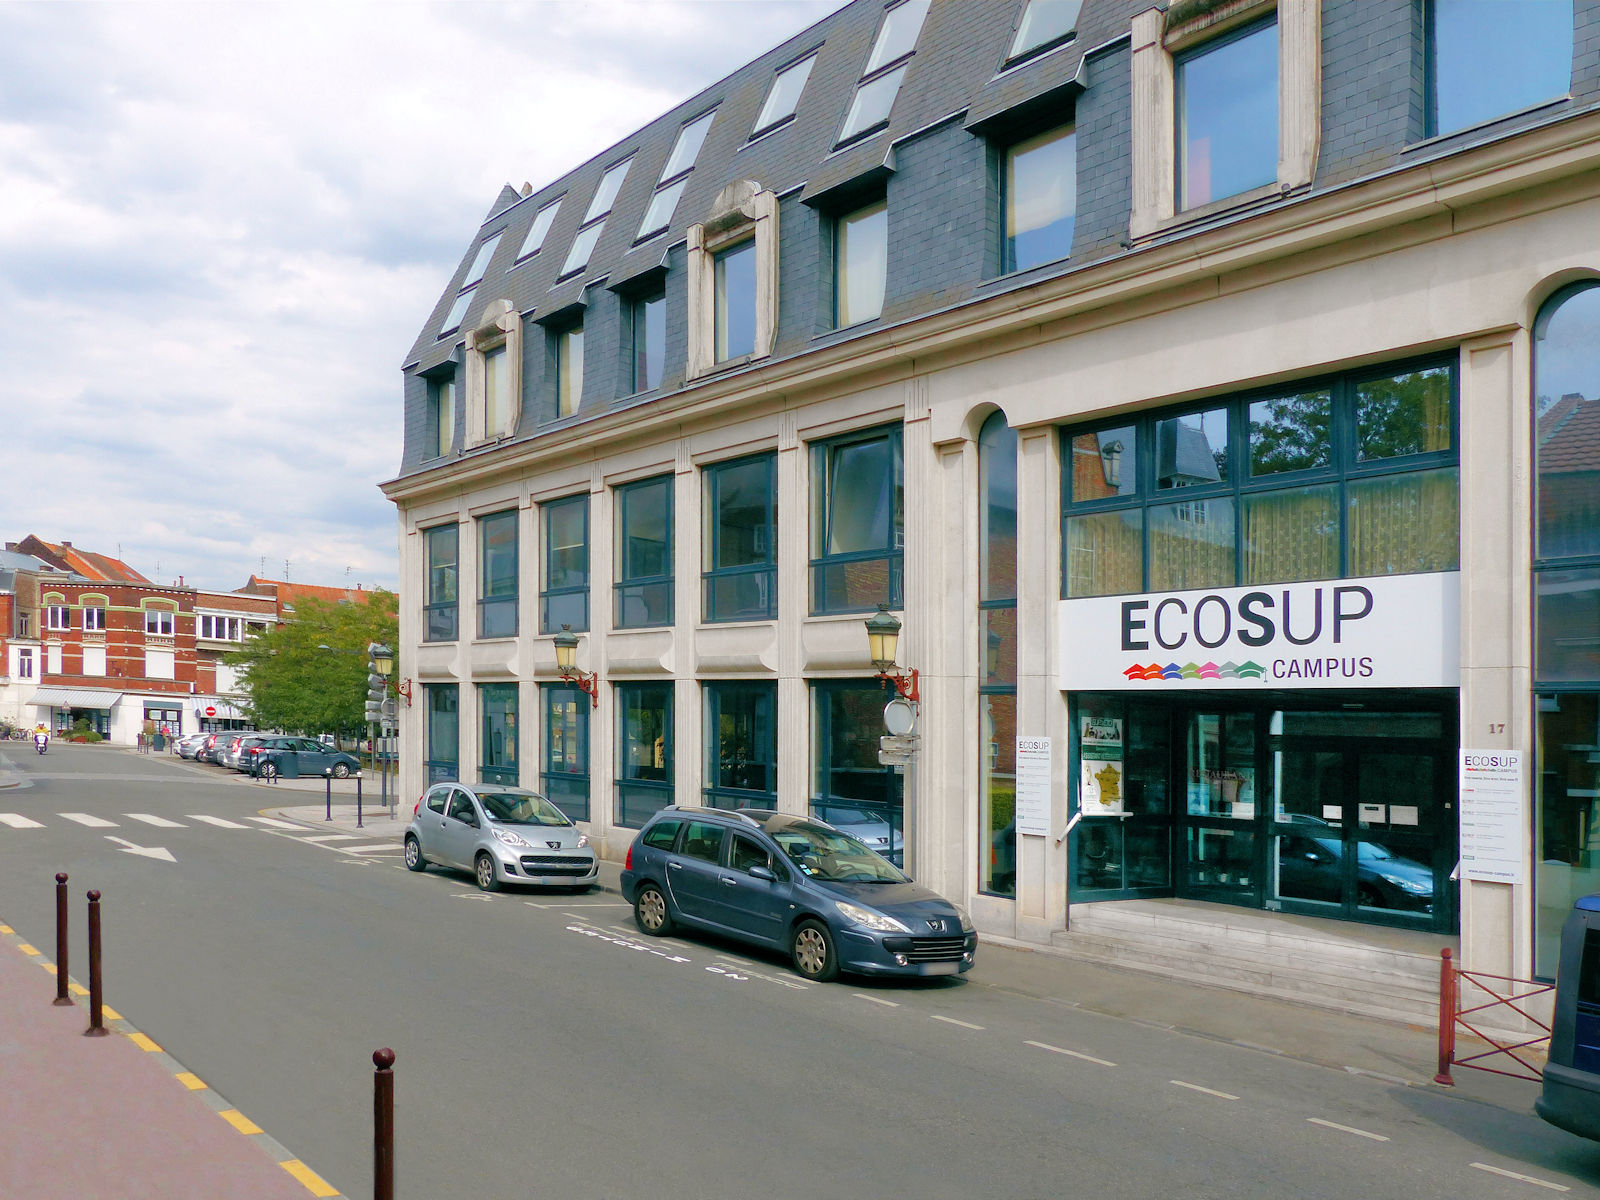 ECOSUP Campus - Place Roussel, Tourcoing